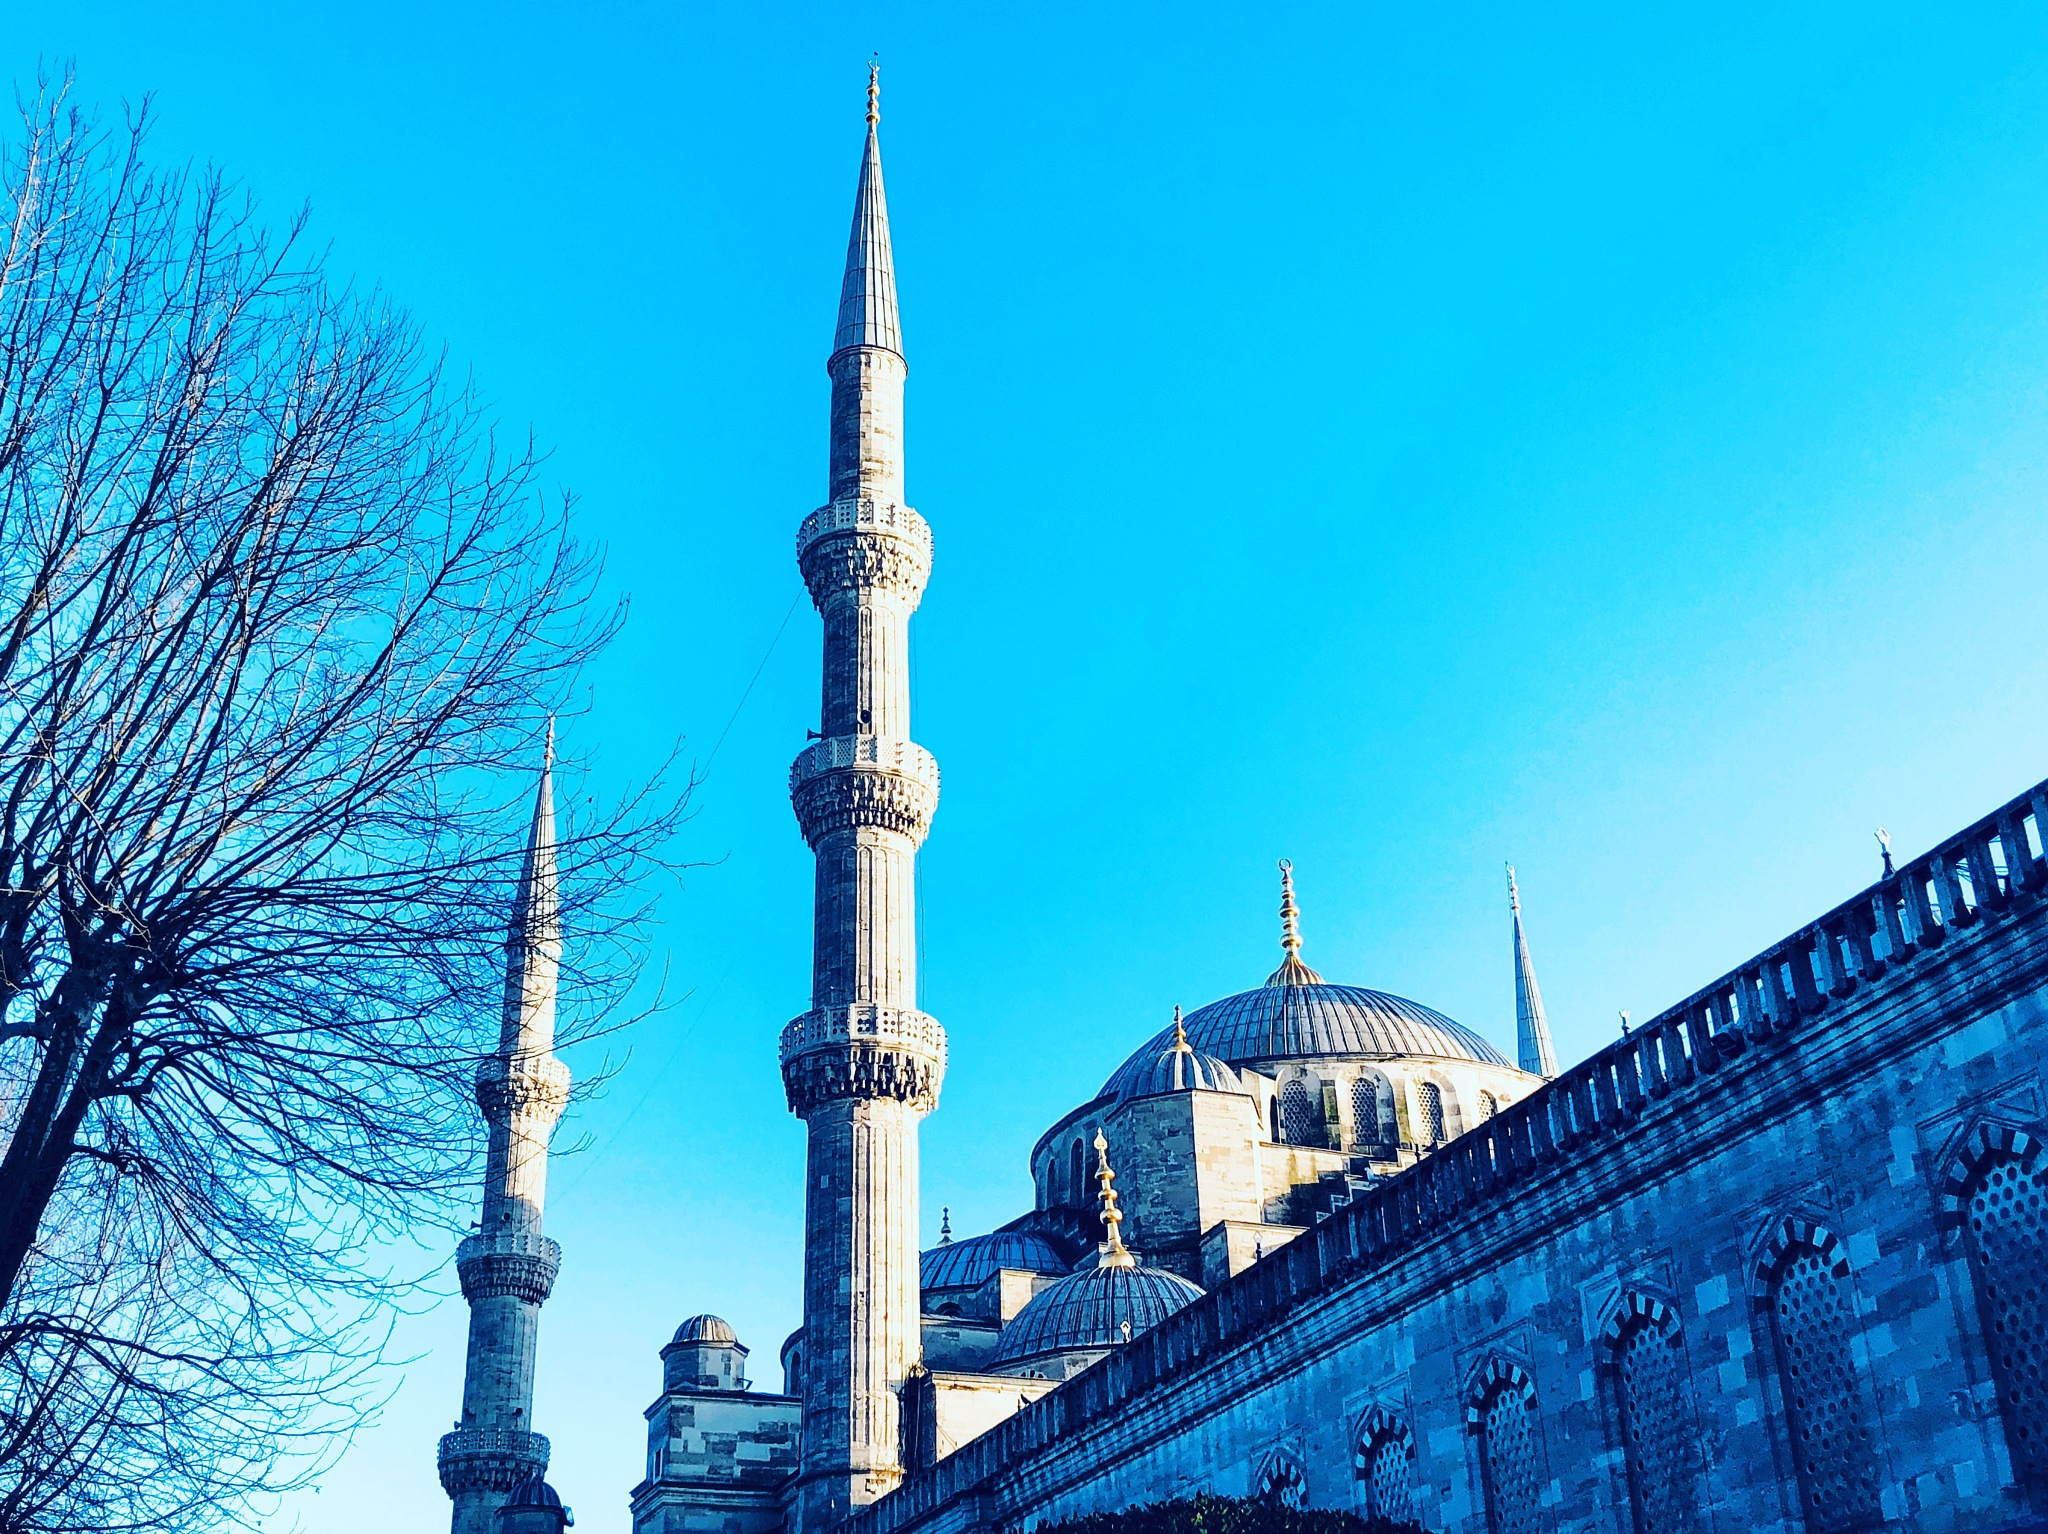 Istanbul II by coiatellimarco